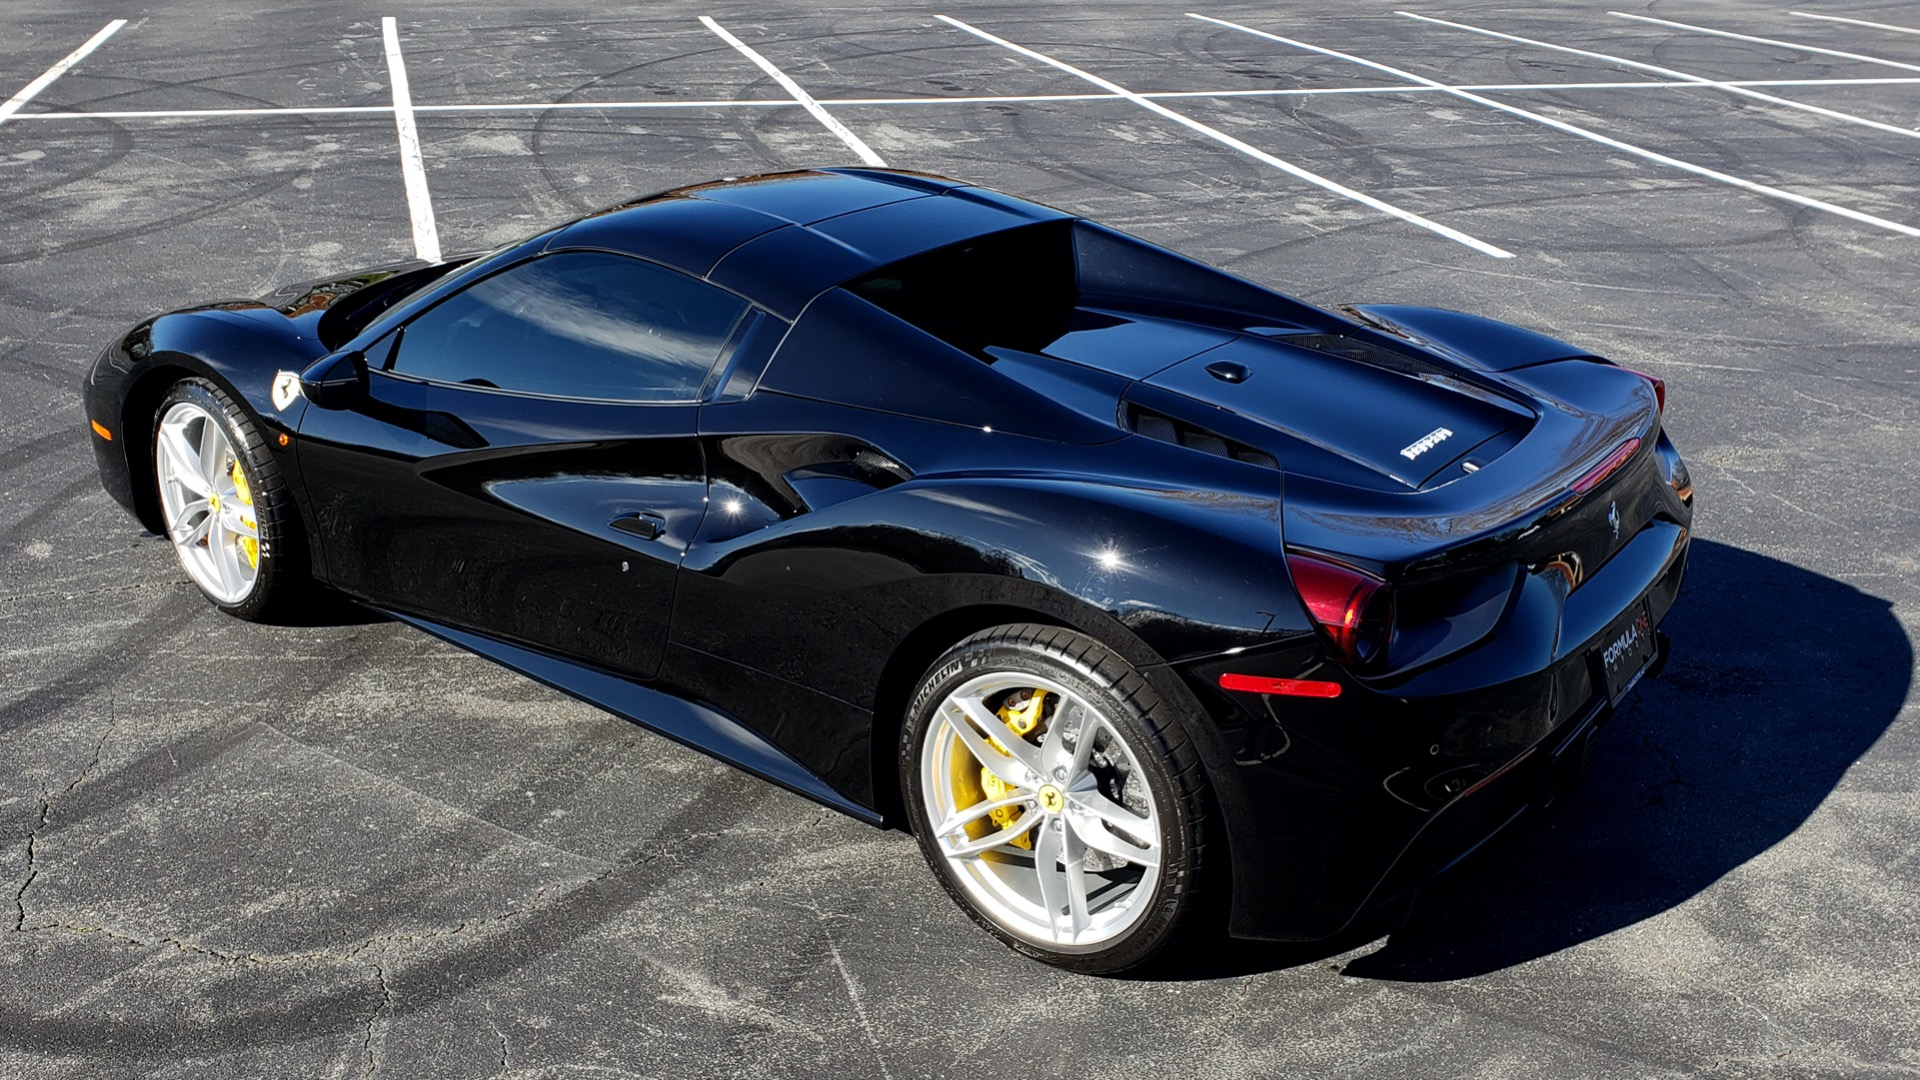 Used 2017 Ferrari 488 Spider SUSP LFT / JBL SND / SPRT EXH / F1 TRANS for sale $315,000 at Formula Imports in Charlotte NC 28227 8